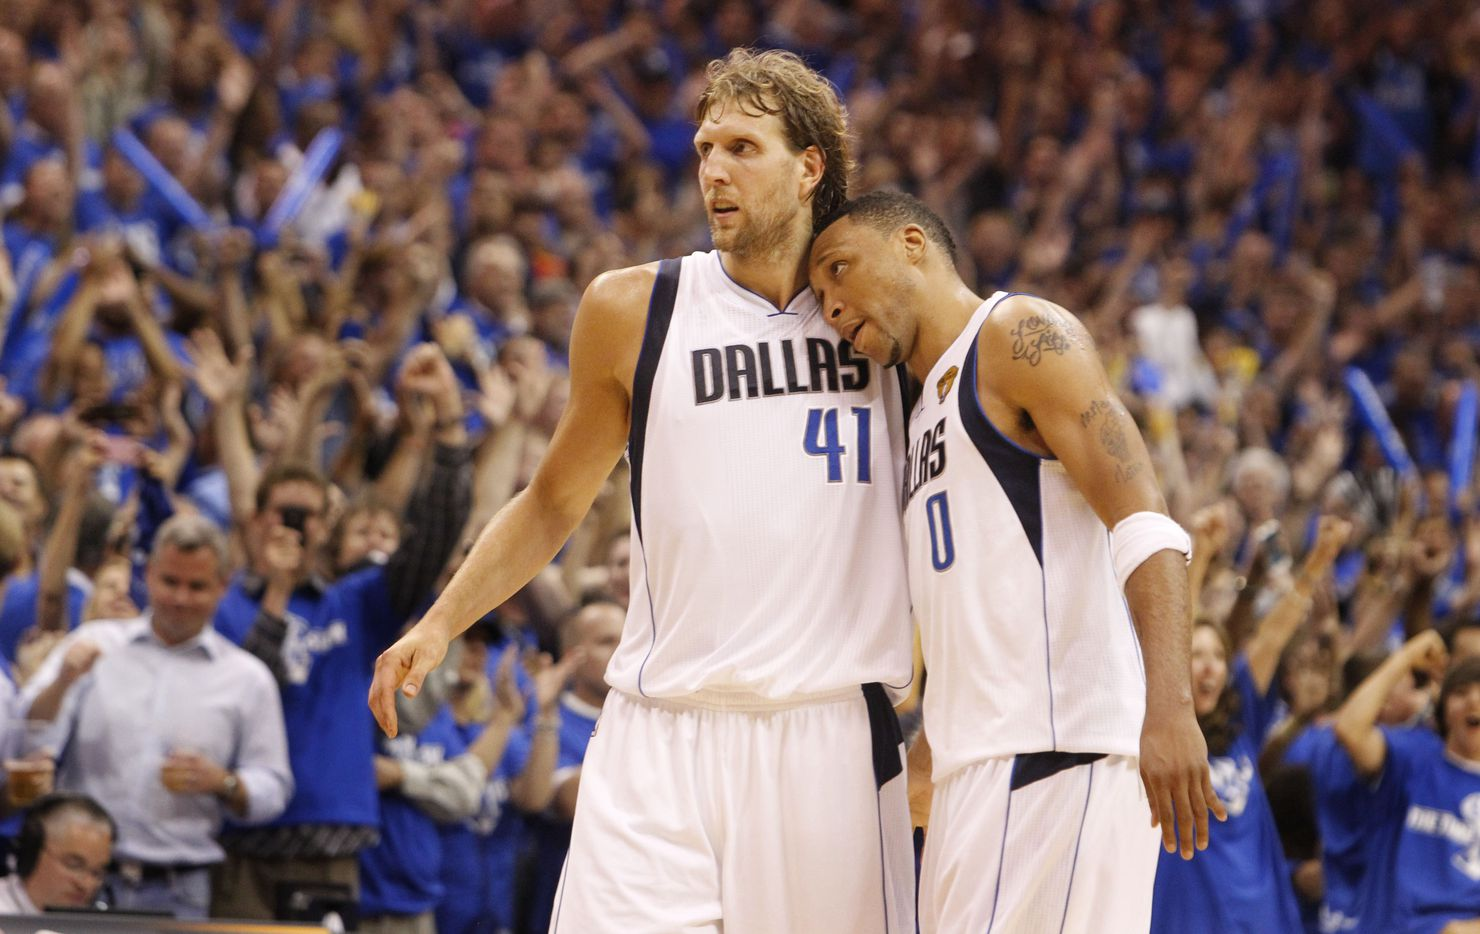 Dallas Mavericks power forward Dirk Nowitzki (41) and Dallas Mavericks small forward Shawn Marion (0) share a close moment after the final seconds tick off the clock at the end of the game in game five of the NBA Finals against the Miami Heat at American Airlines Center Thursday, June 9, 2011 in Dallas. The Mavericks won 112-103 to take a 3-2 lead in the series. (Louis DeLuca/The Dallas Morning News) 06142011xMAVSspecial